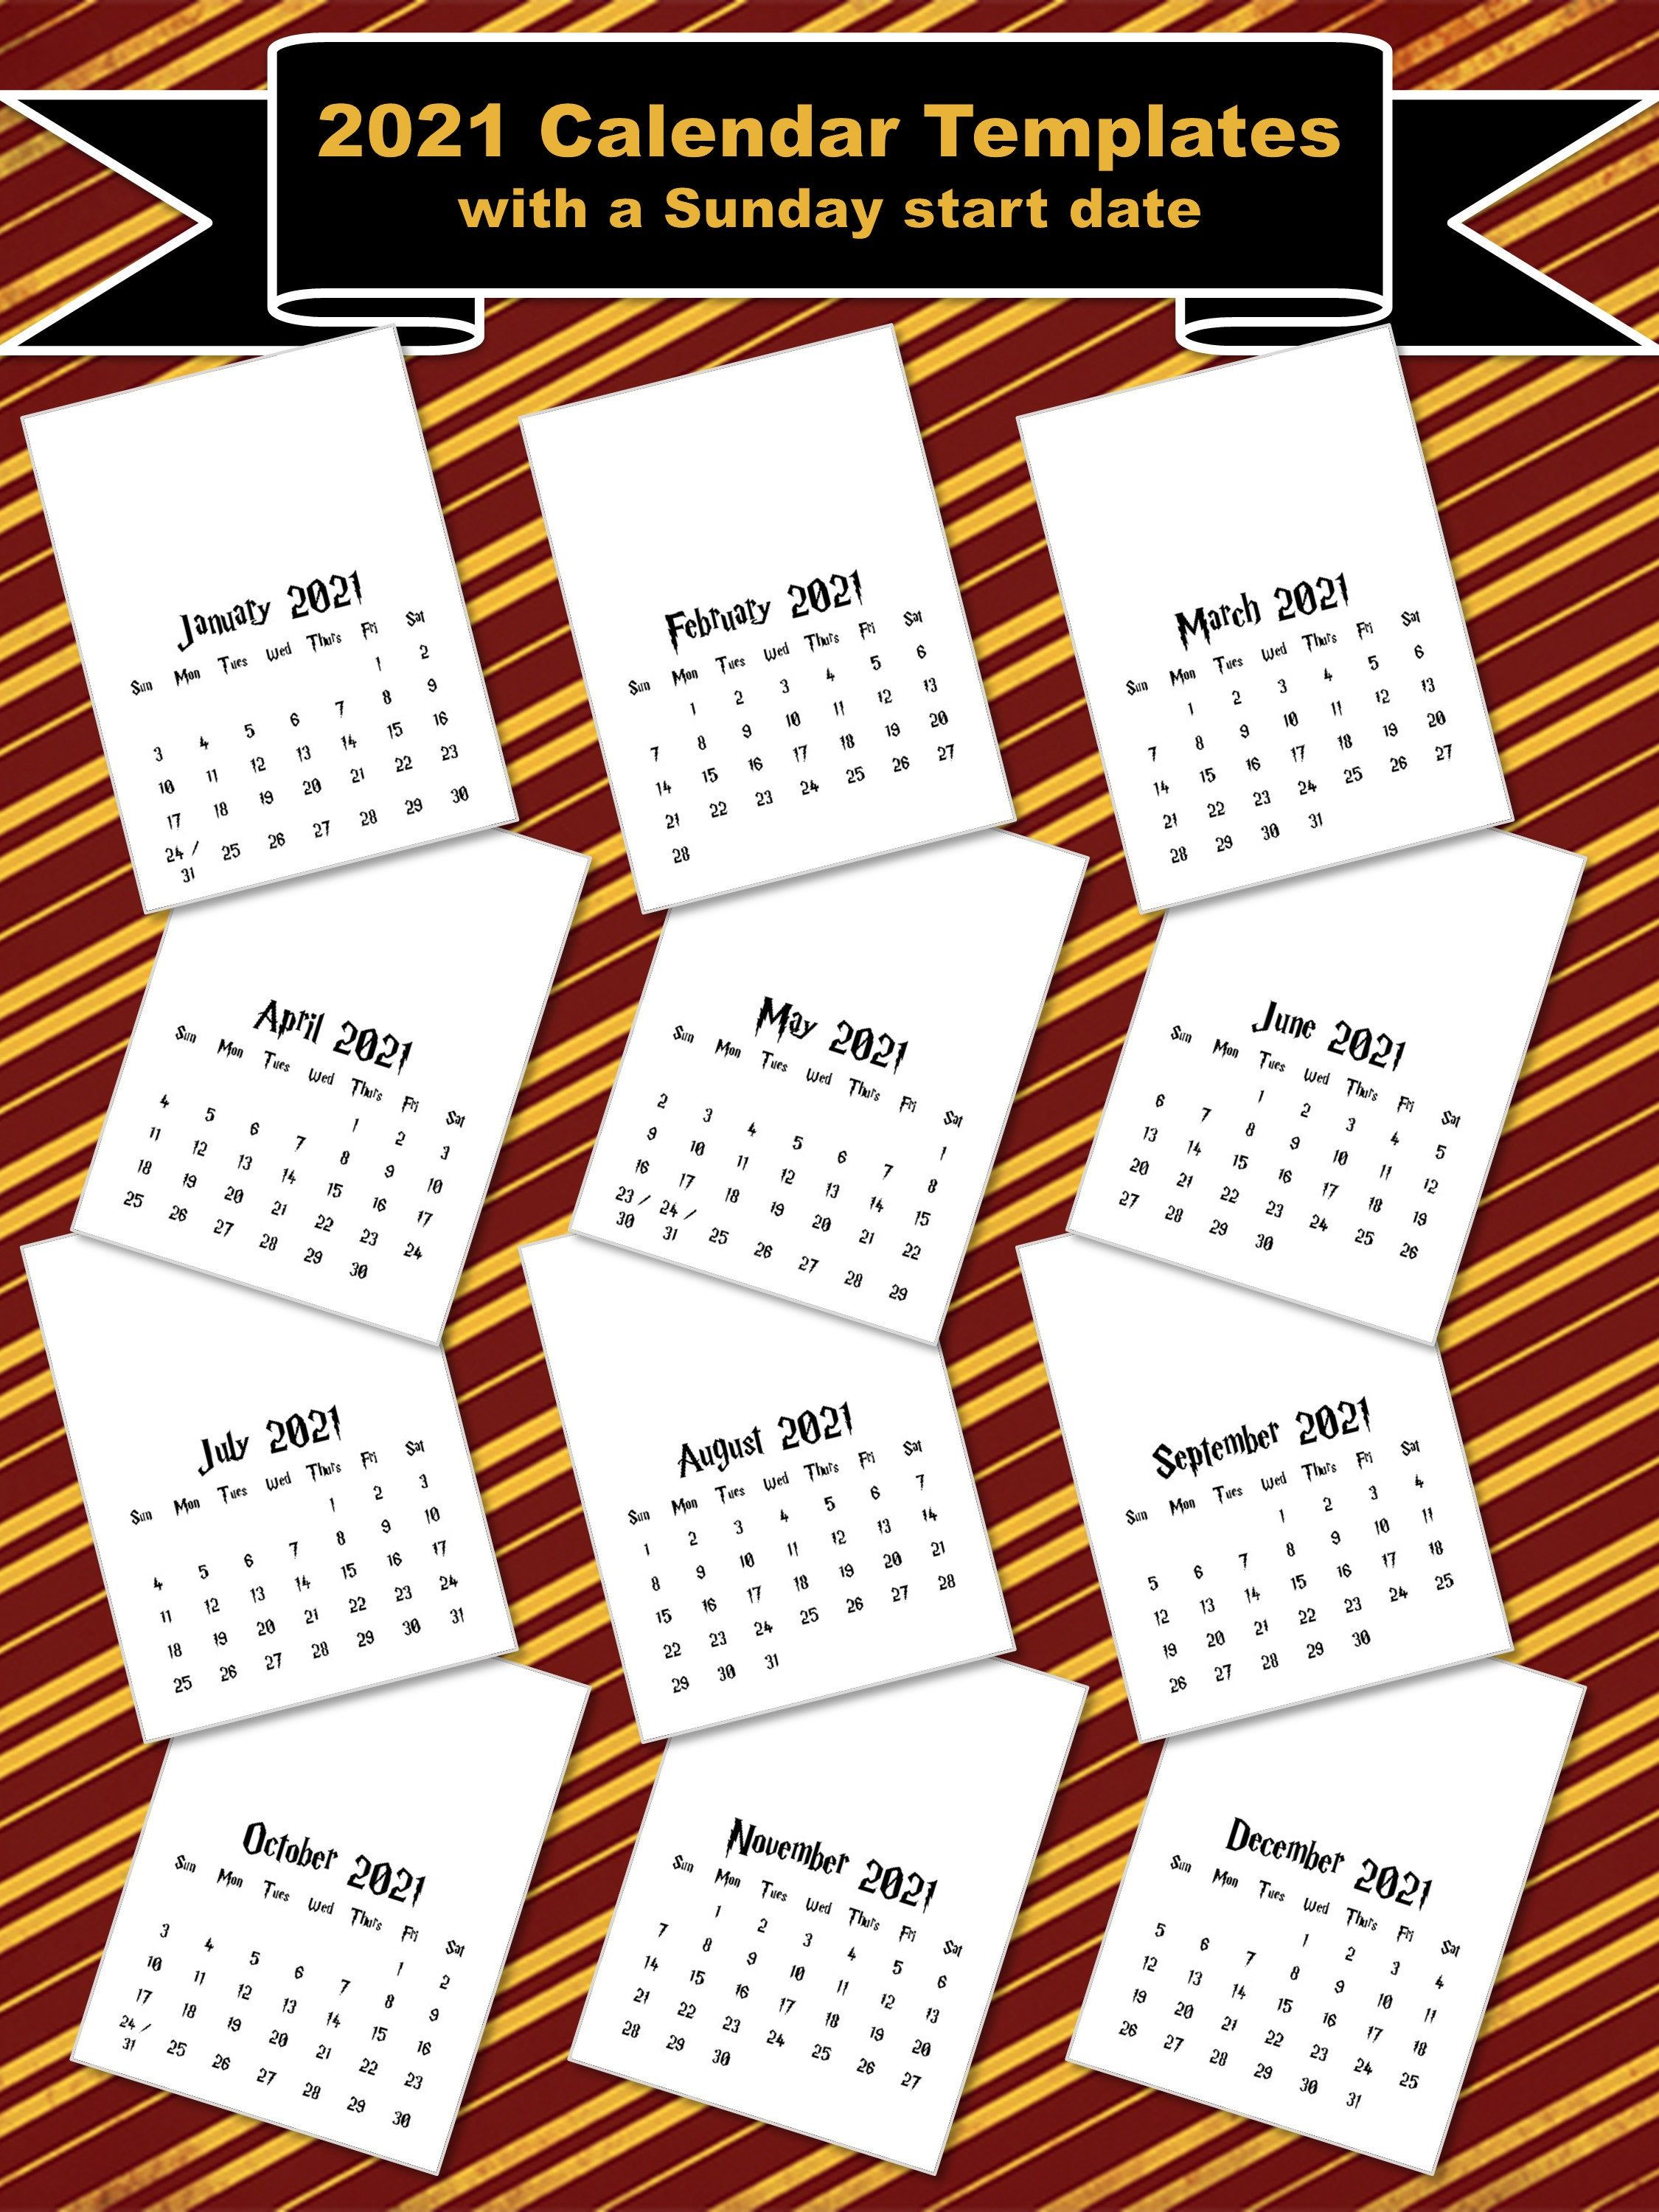 2021 Calendar Templates With Sunday Start 8x11 Etsy In 2020 2020 Calendar Template Calendar Template Calendar